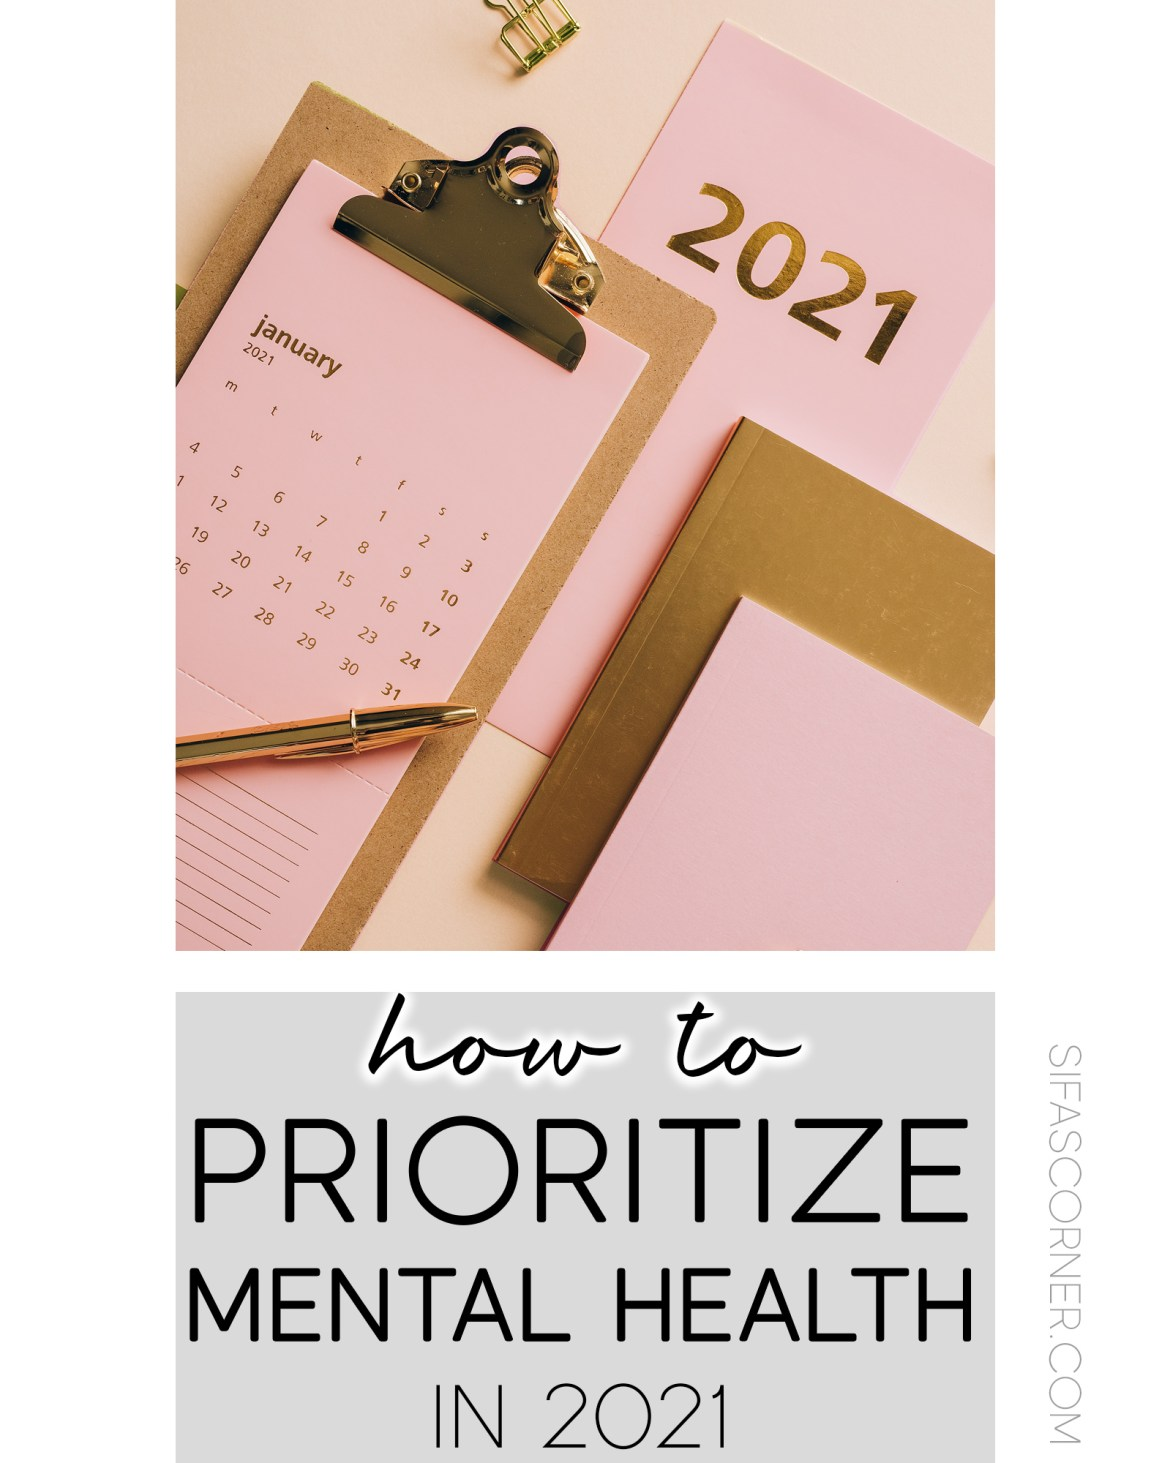 Prioritize Mental Health